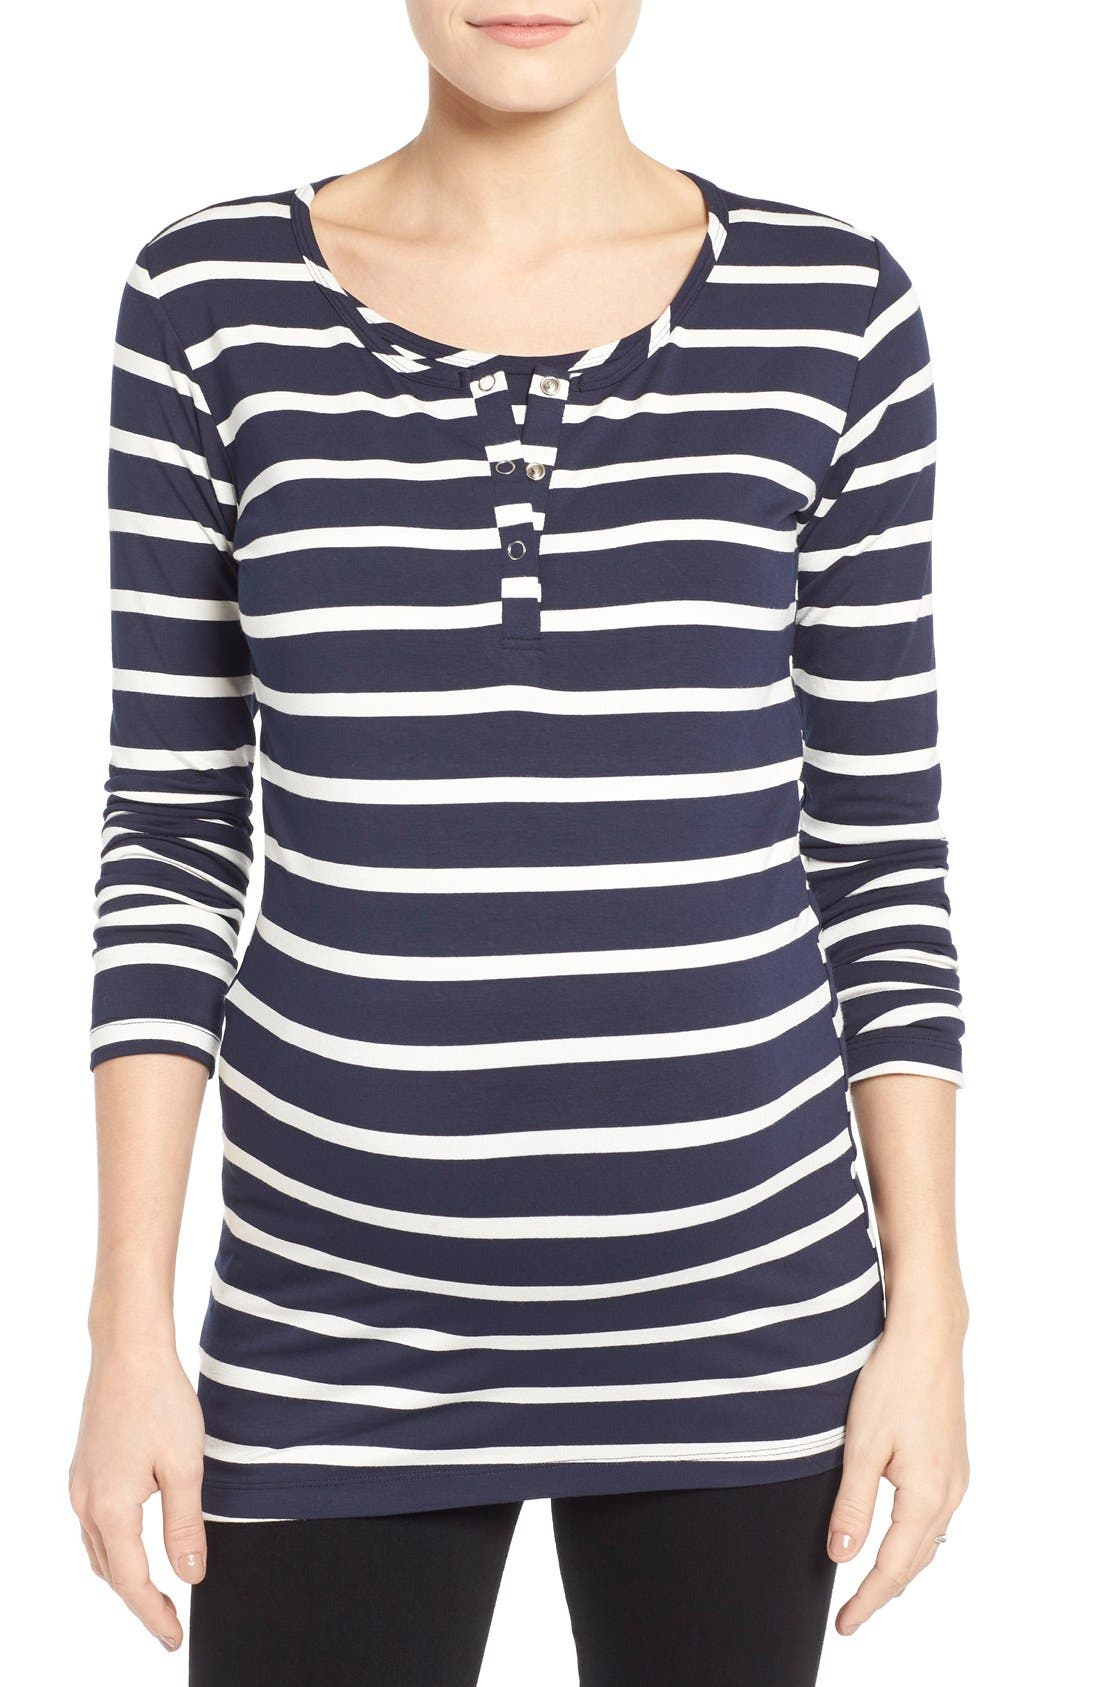 'Wendy' Nursing Top,                             Main thumbnail 1, color,                             UNEVEN NAVY STRIPE